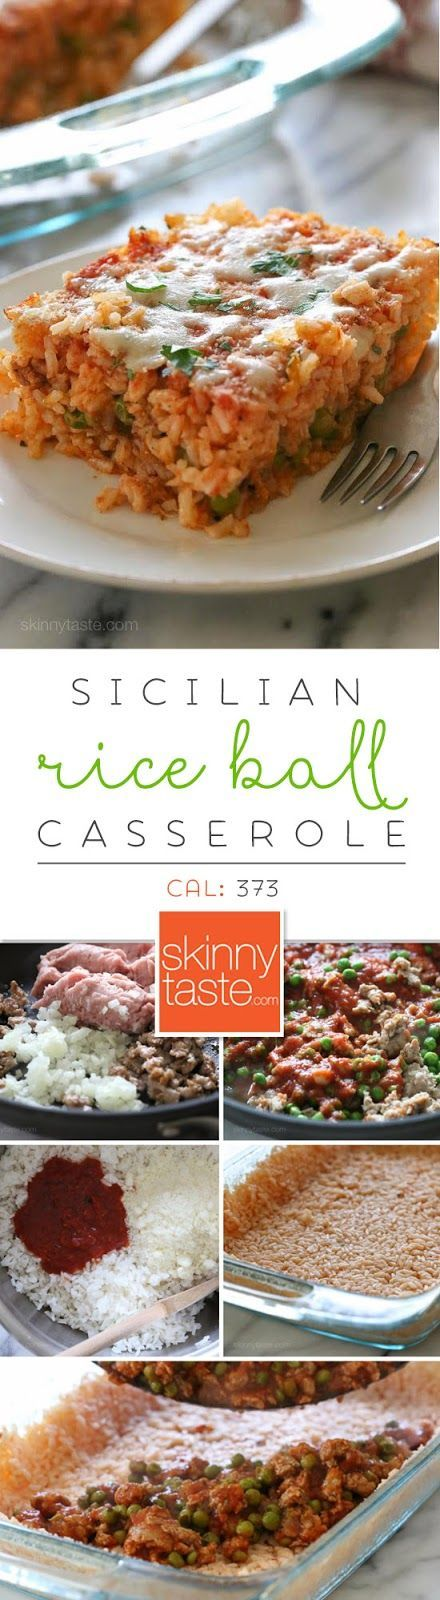 Sicilian Rice Ball Casserole – everything you love about arancini made into an easy casserole for weeknight dinners. Freezer friendly and kid-friendly!